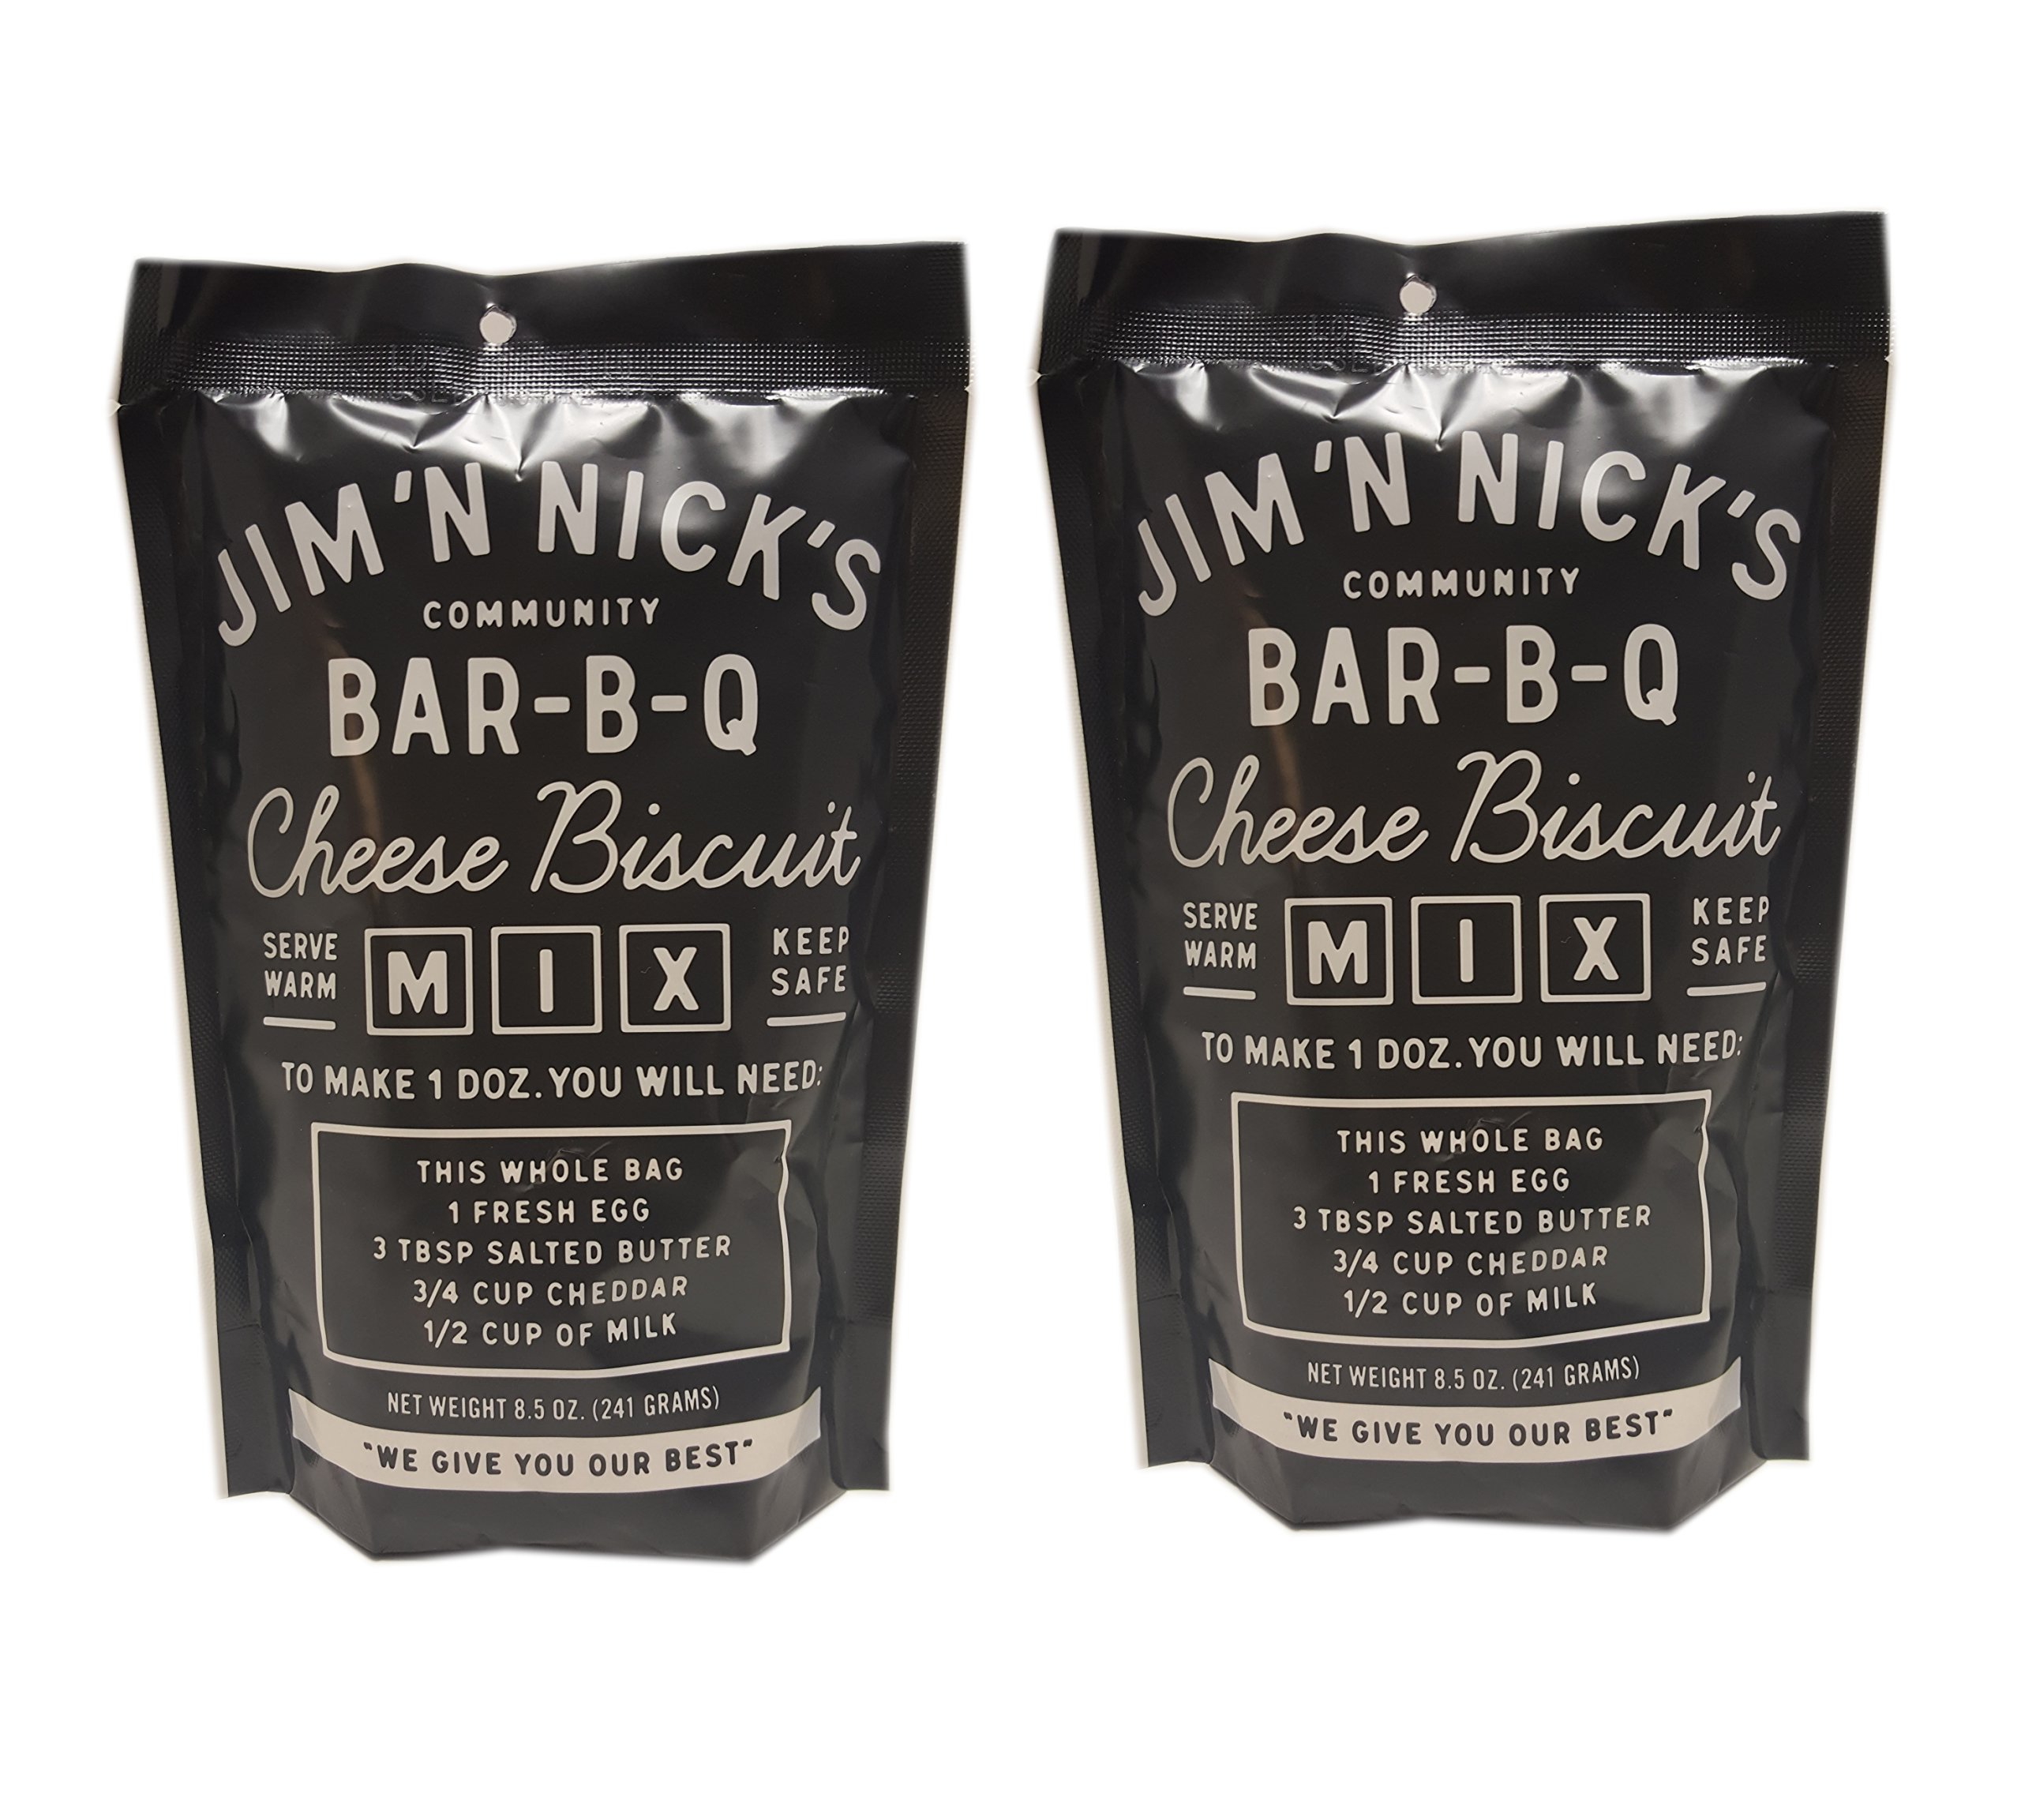 Jim N Nicks World Famous Cheese Biscuits Mix - 8.5 -Ounce (Pack of 2)